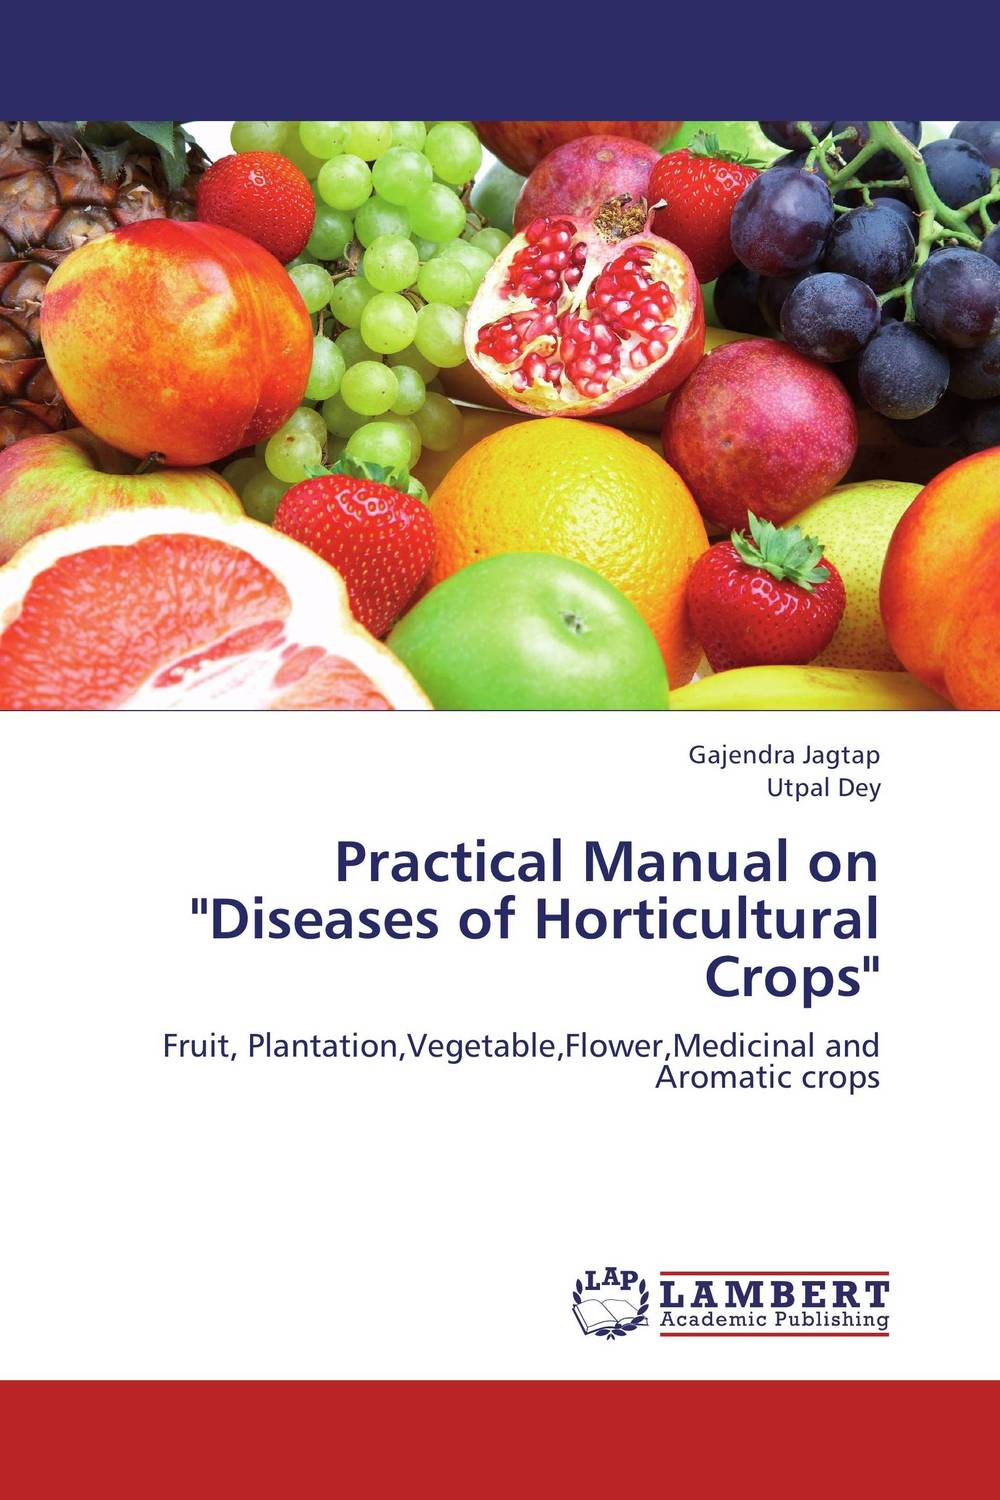 Practical Manual on Diseases of Horticultural Crops belousov a security features of banknotes and other documents methods of authentication manual денежные билеты бланки ценных бумаг и документов